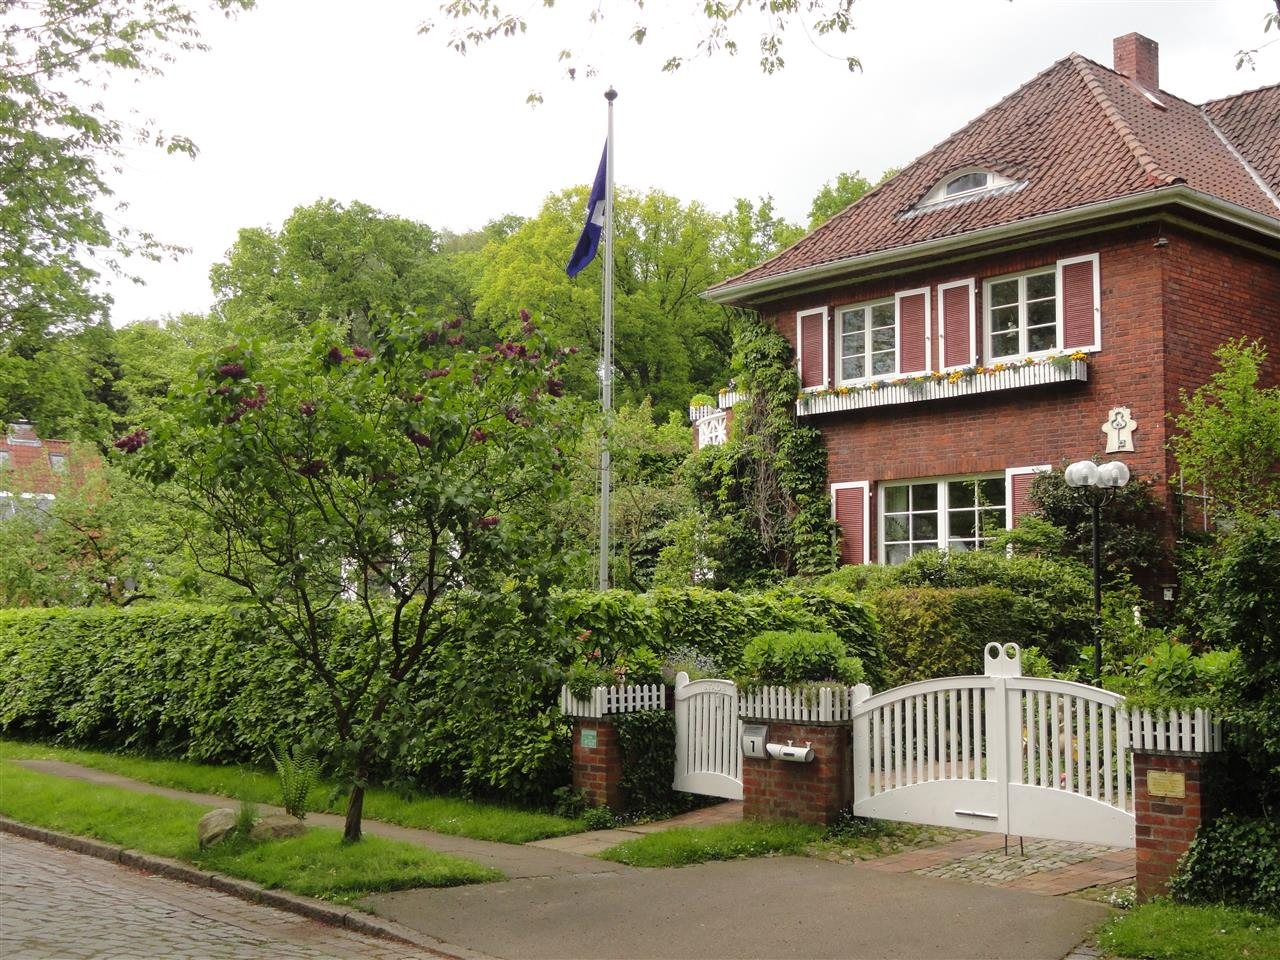 Real Estates in Hamburg and Germany